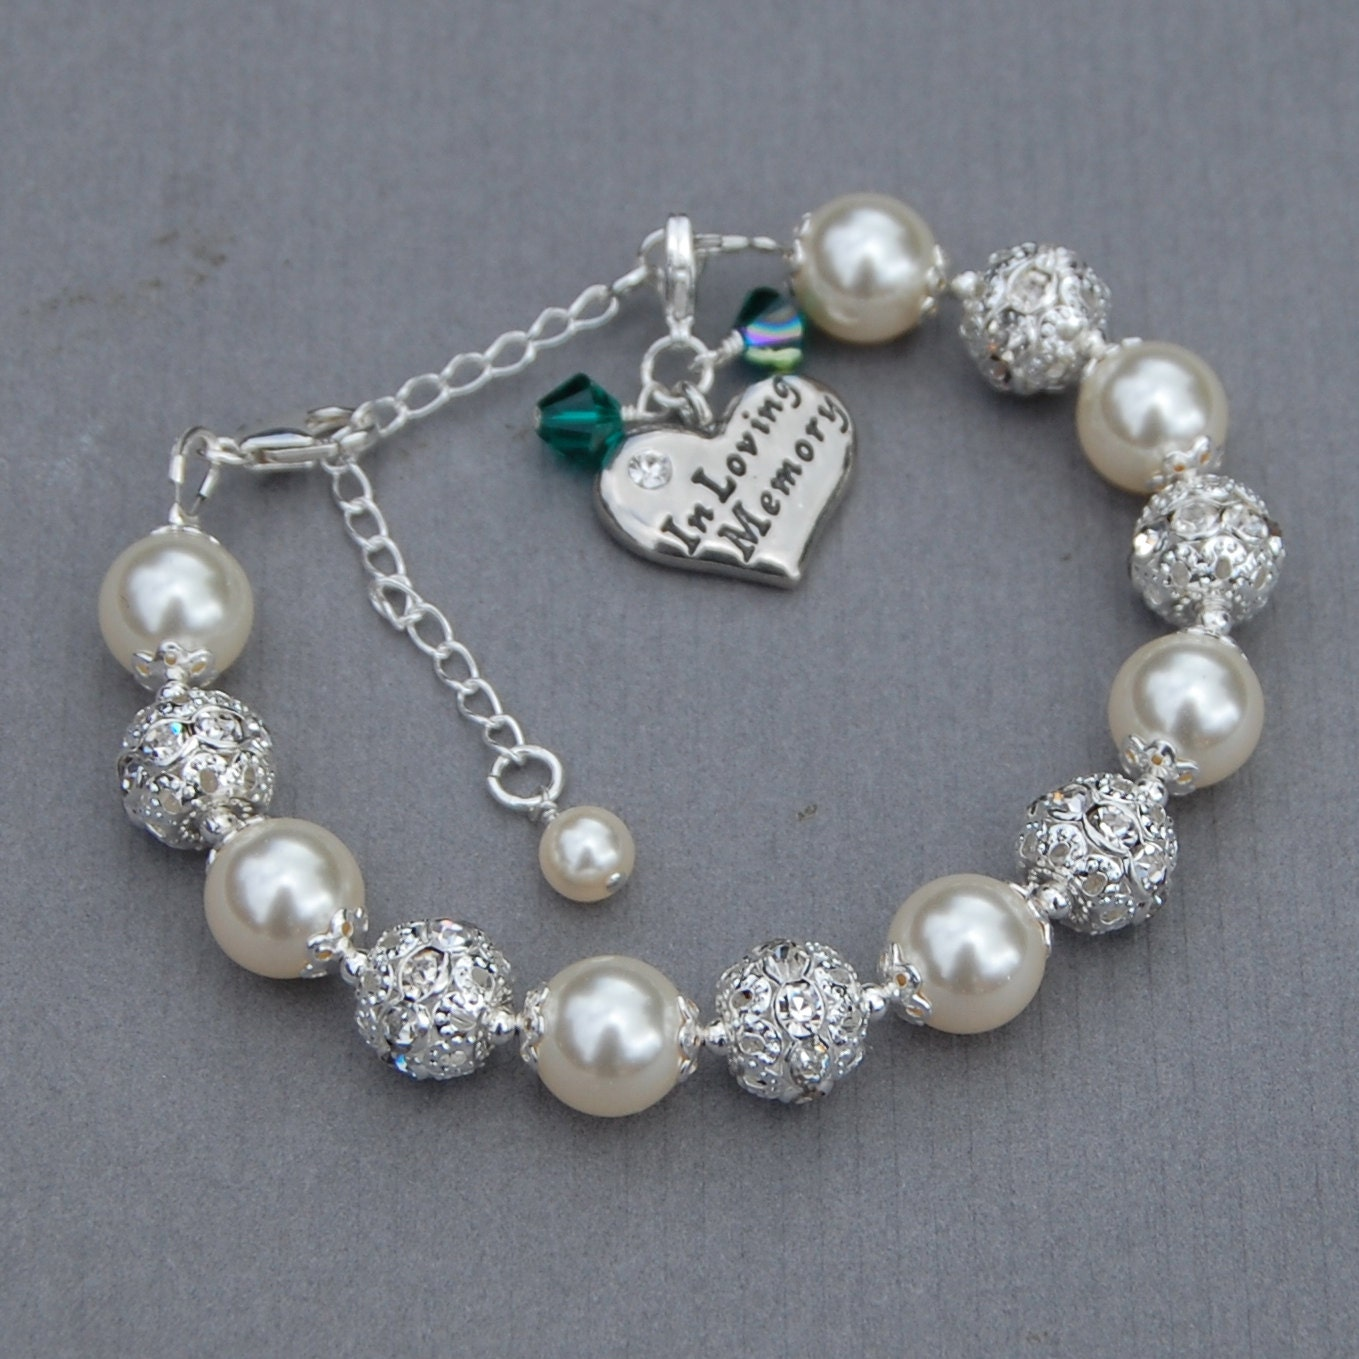 in loving memory jewelry in memory jewelry in loving memory charm bracelet by 9139